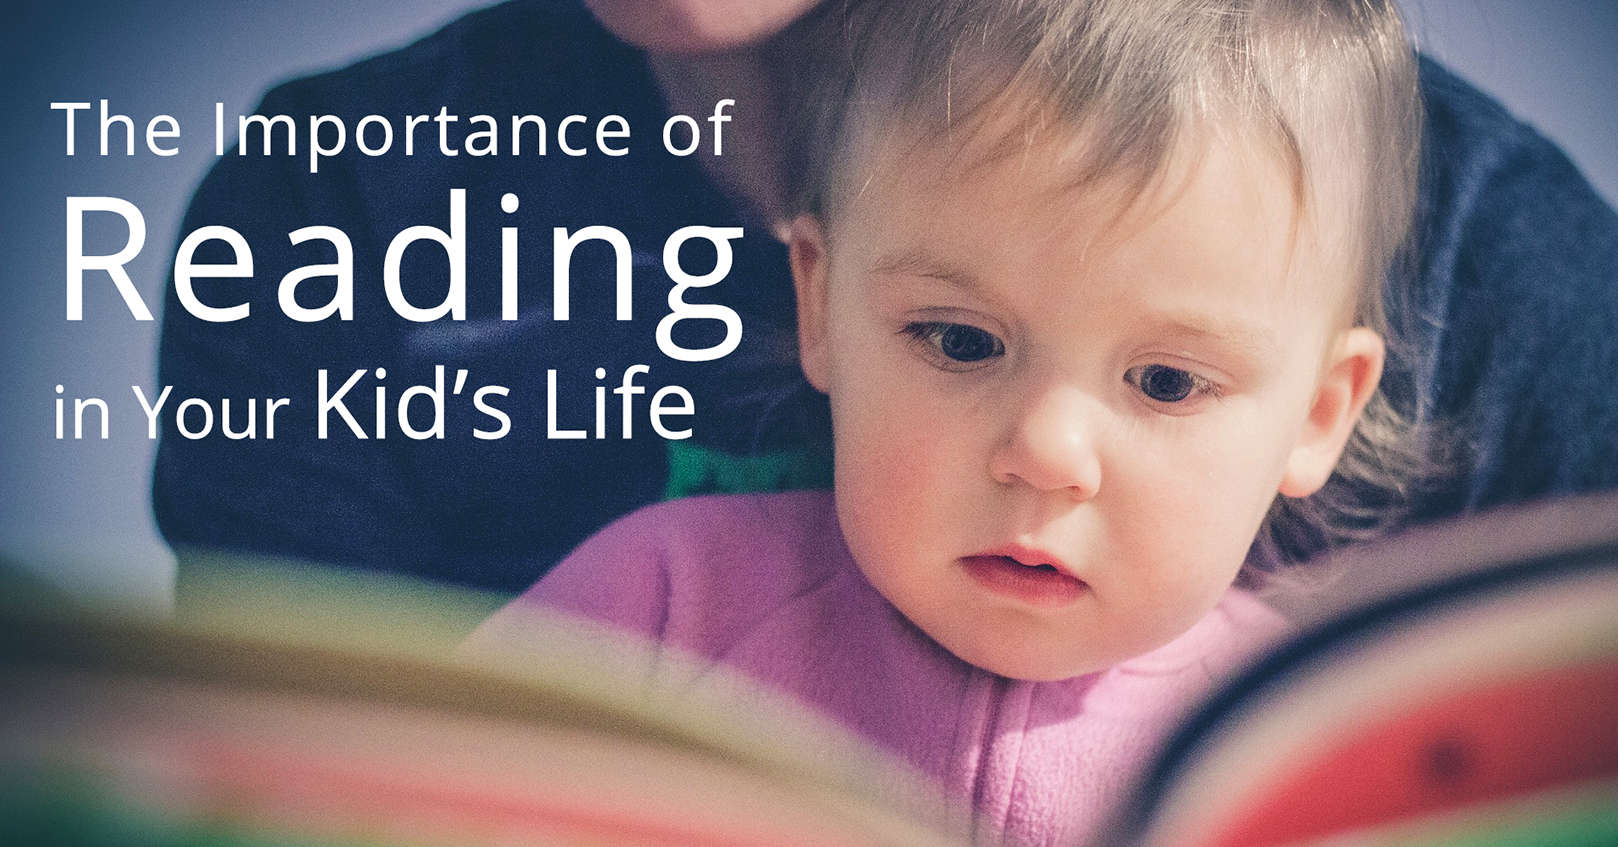 importance of reading in your kid's life